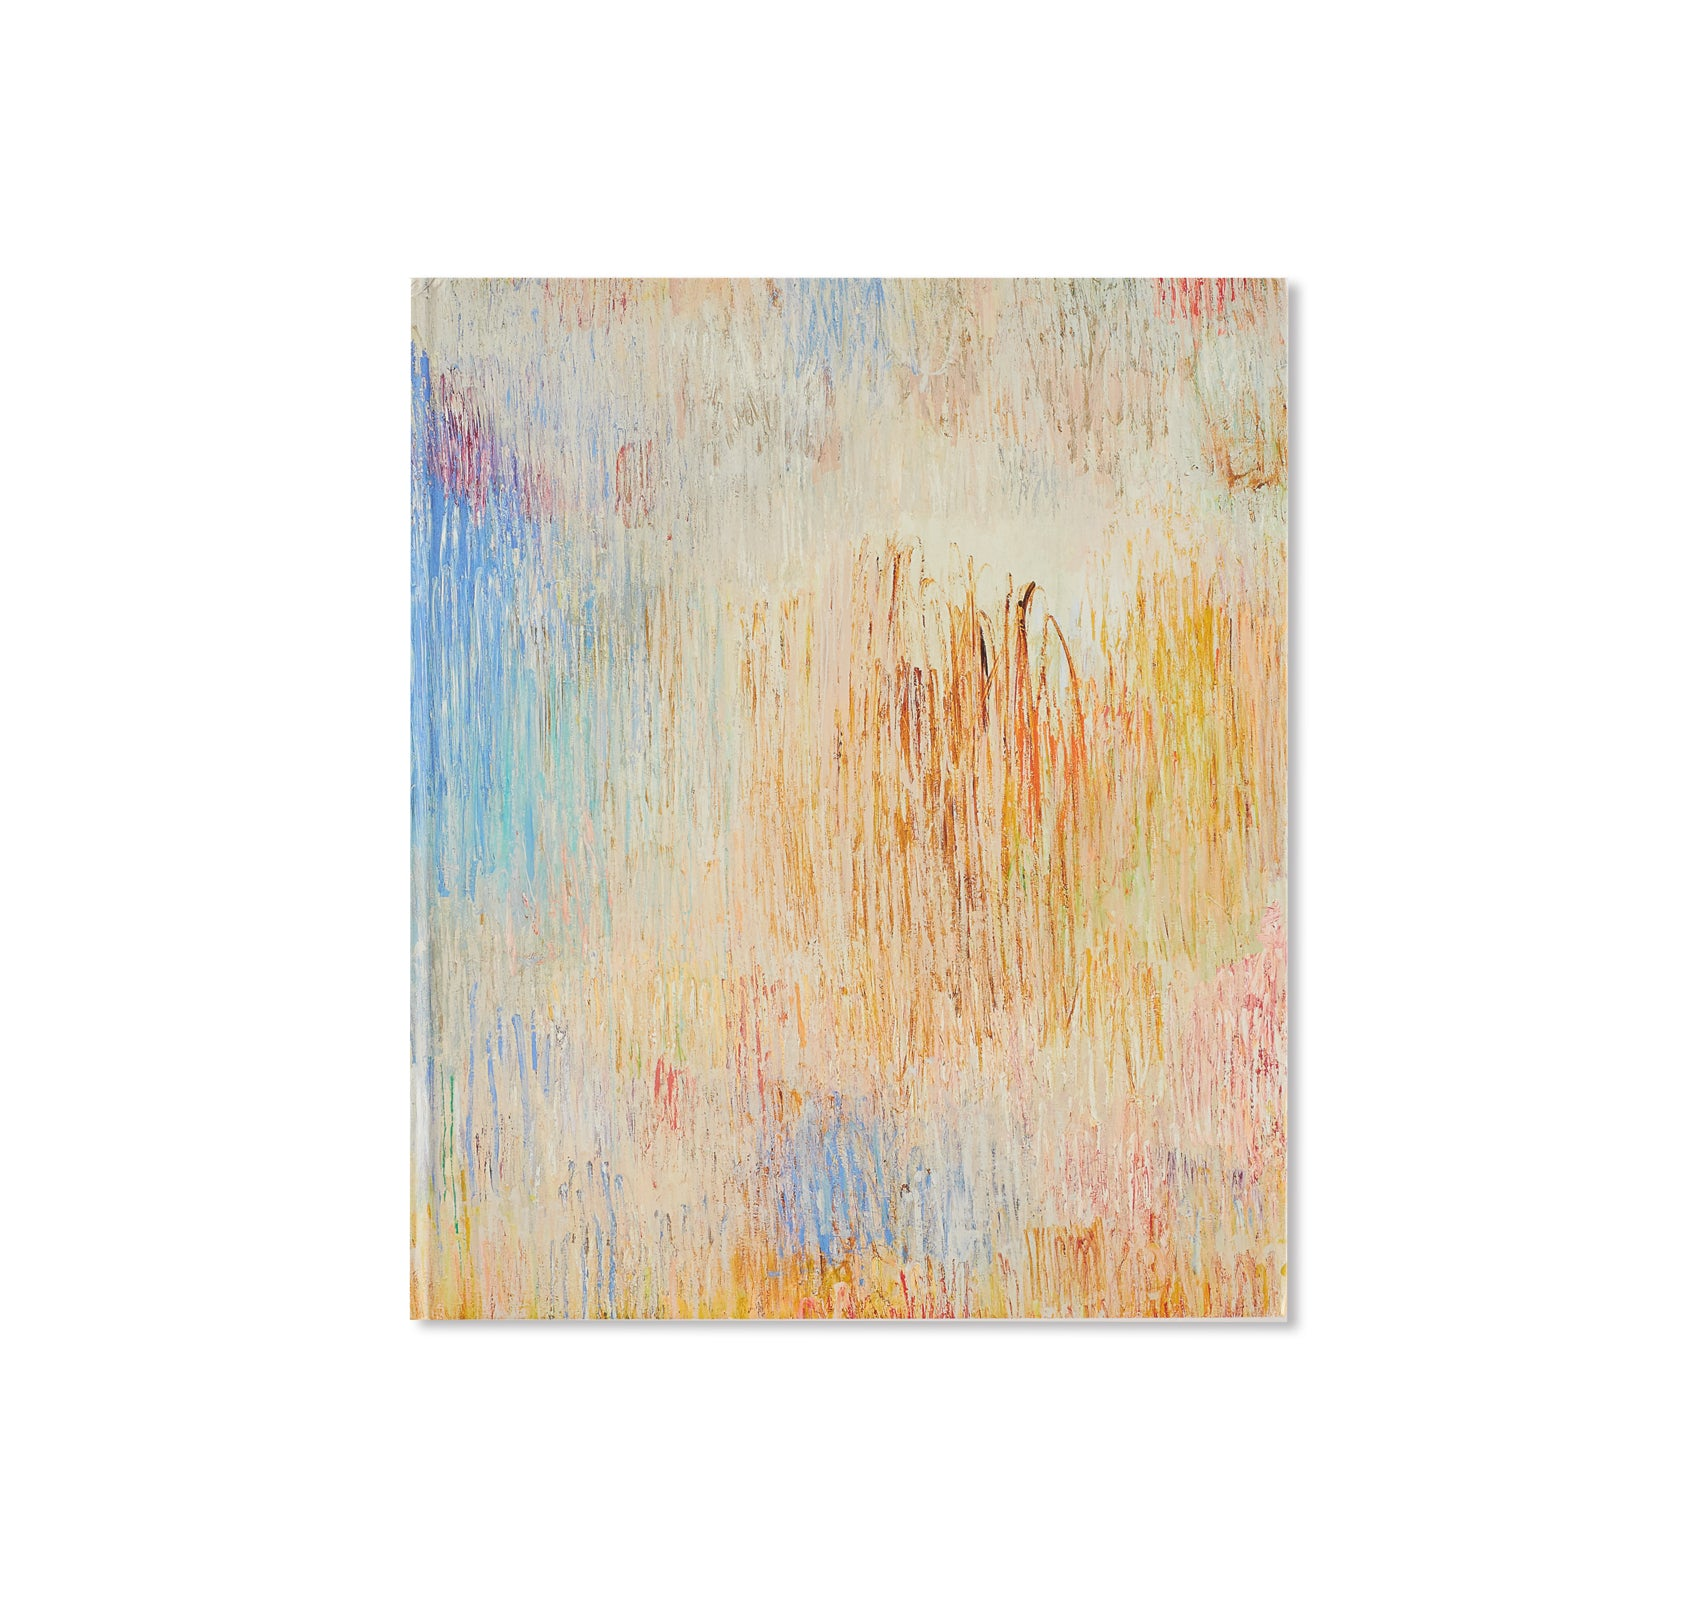 NEW PAINTING by Christopher Le Brun